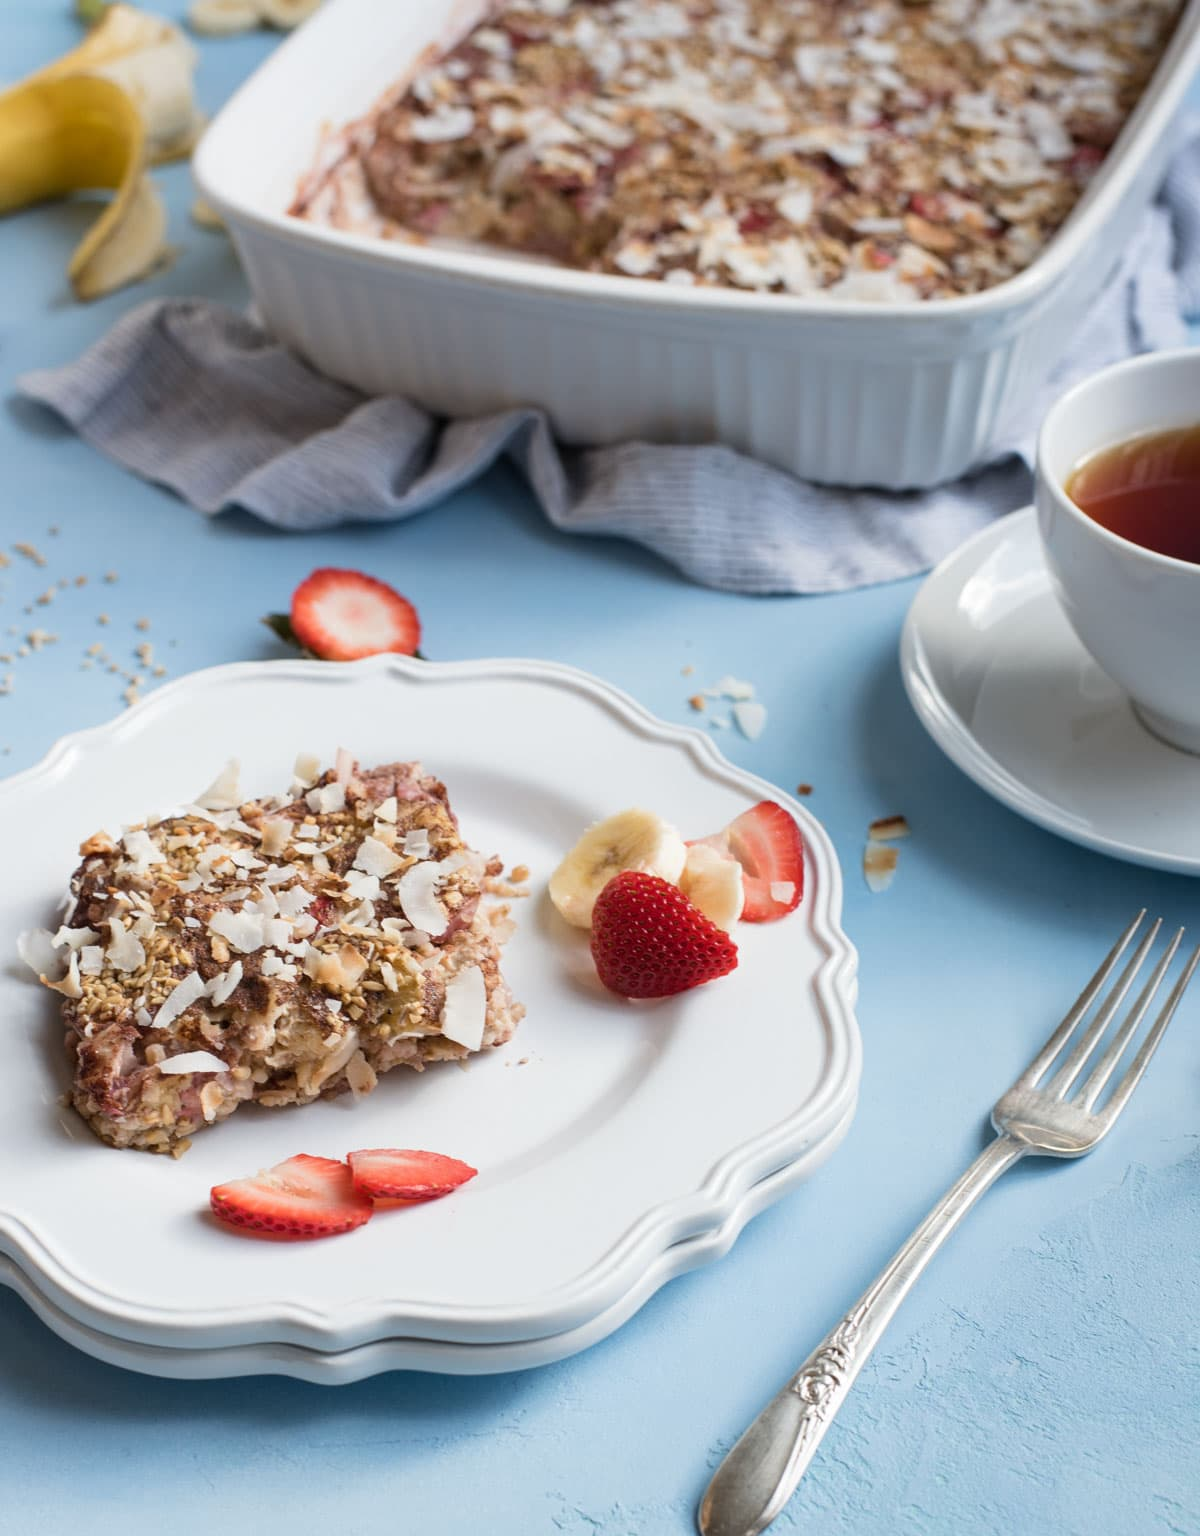 Strawberry Banana Steel Cut Oat Bake slice on a plate with full dish in background